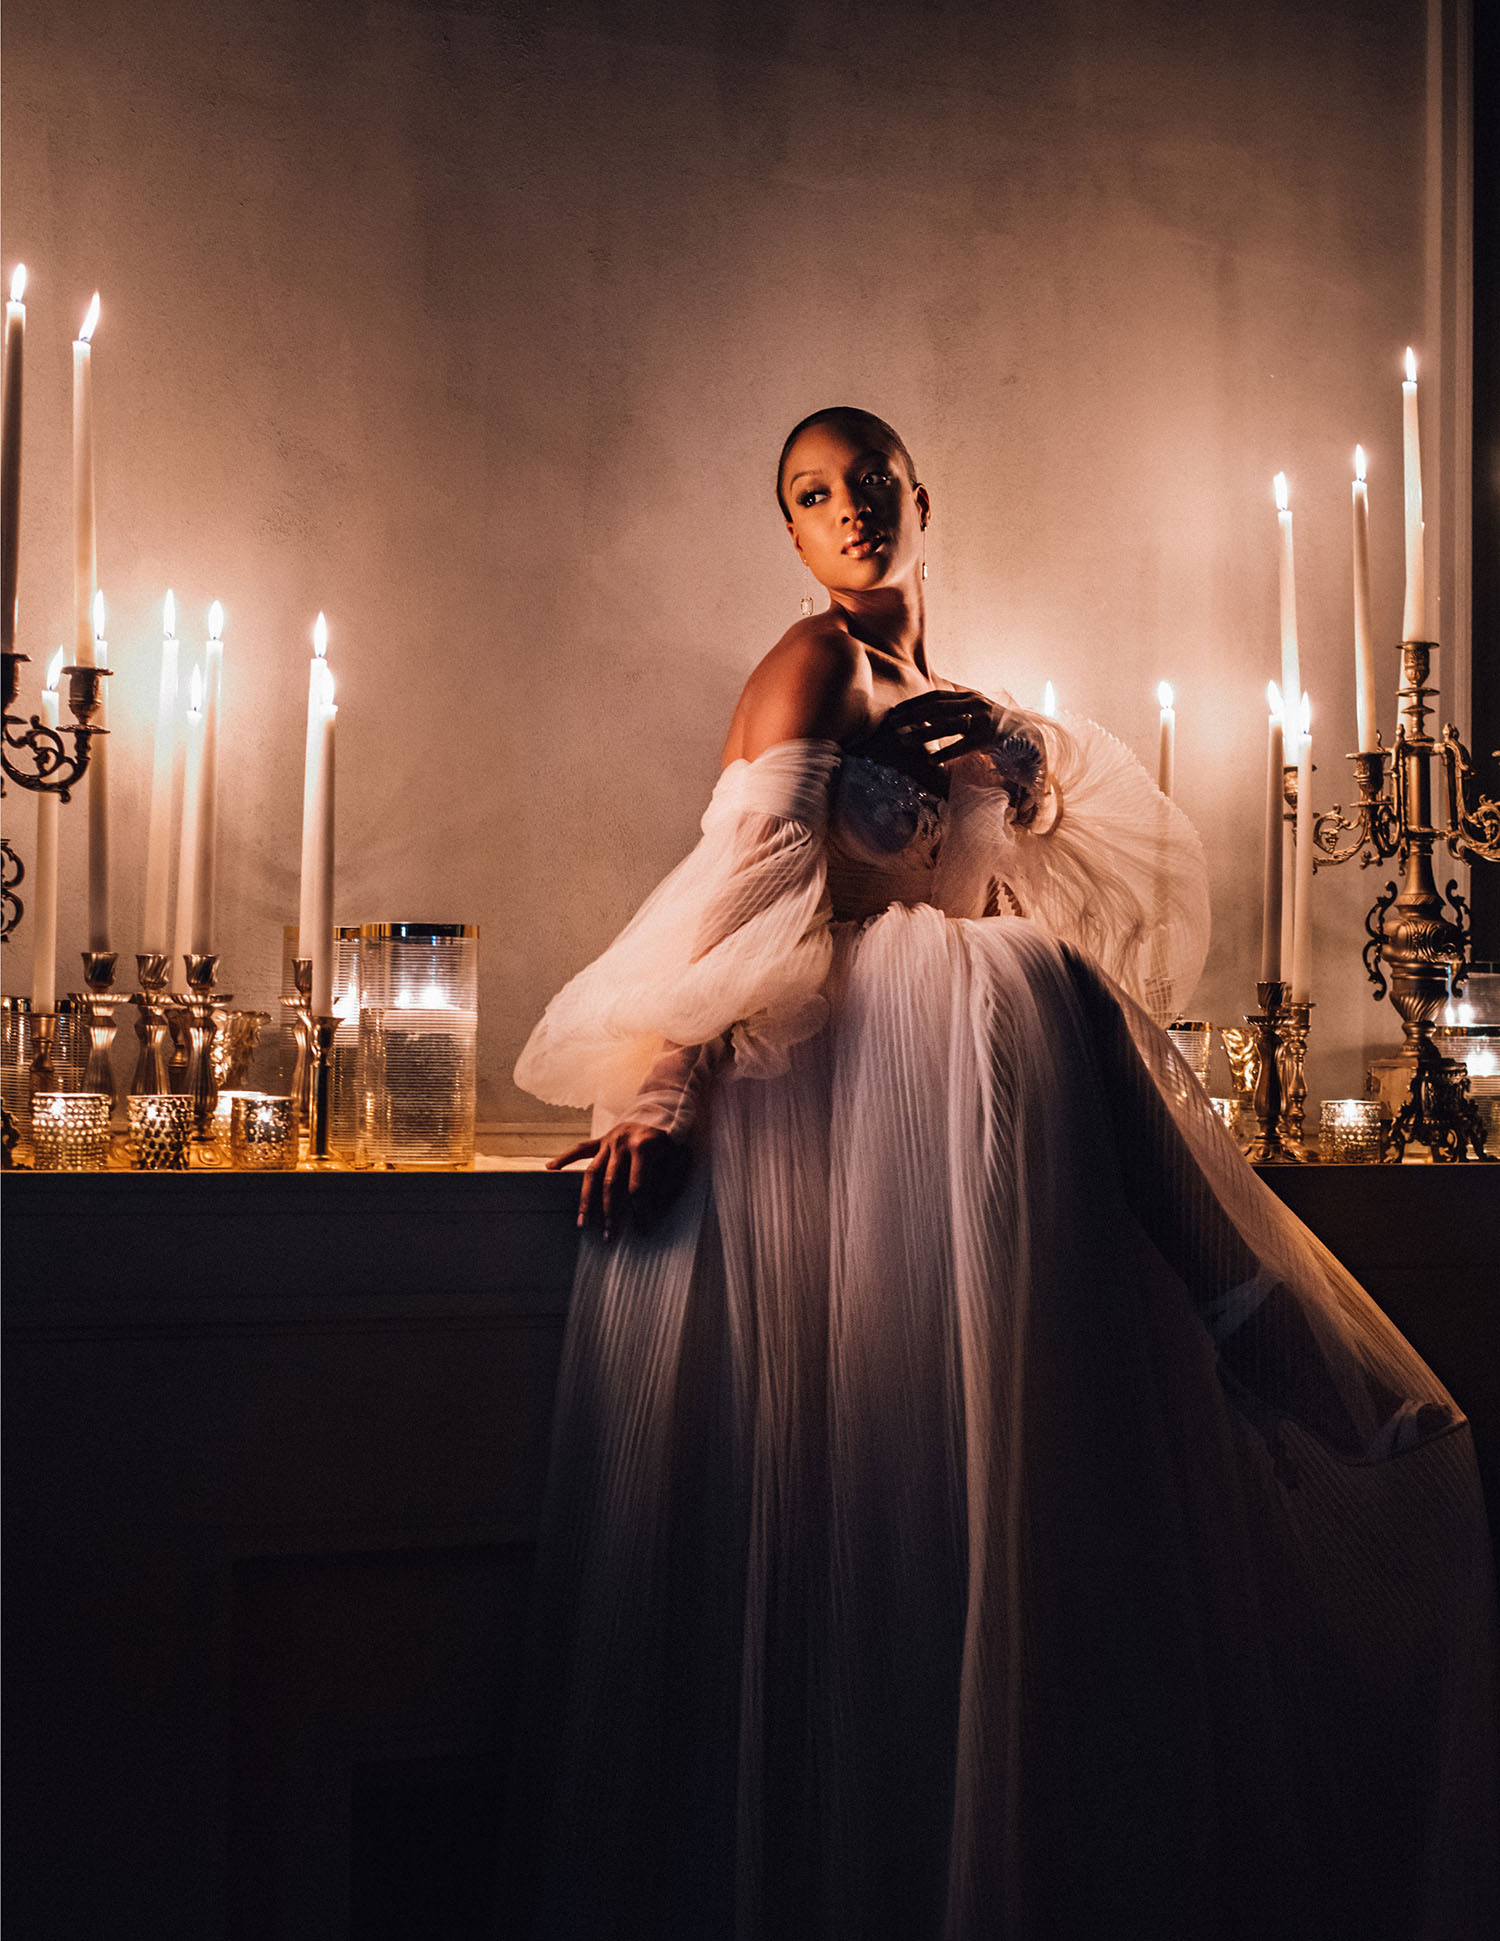 MunaLuchi Bride Winter 2019 Michelle Mitchenor Bridal Shoot - Set design by Eddie Zaratsian - romantic blush wedding gown in candle light